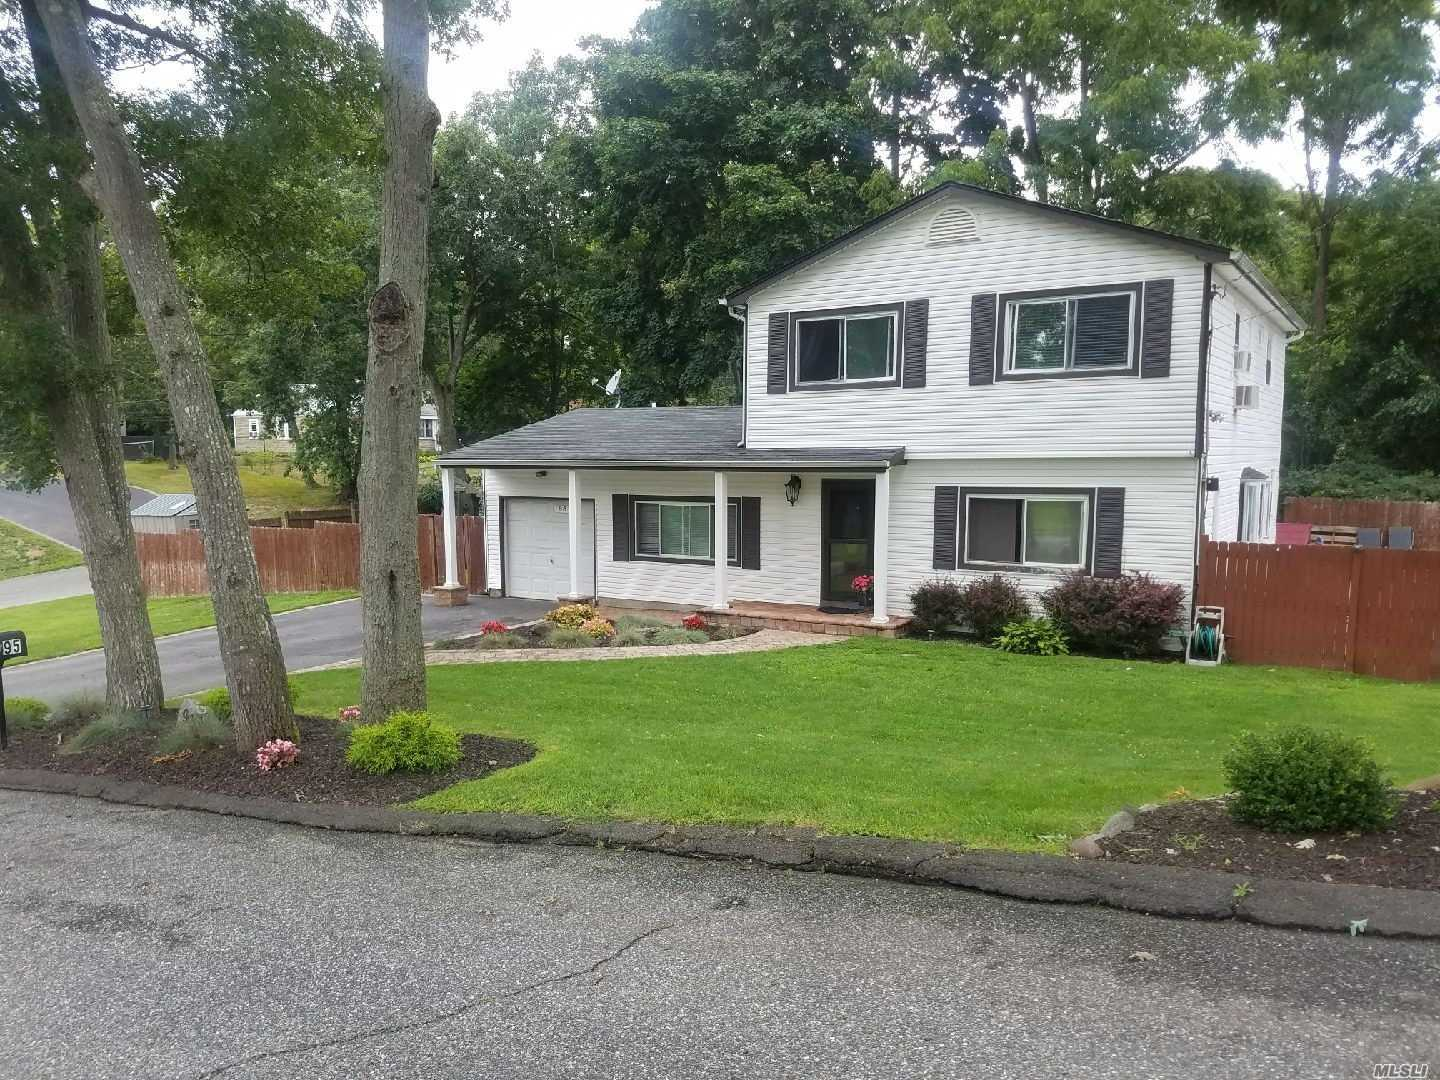 Move Right Into This Large Colonial W/Rm For Mom! Lge Eik/Din Rm Combo W/Maple Cab, Granite, Ss, Nw Flr, New Bths, Recessed Lts, Liv Rm W/Sliders To Deck, Walk In Clst, Fin Bsmnt W/Lndry , Nw Frnt Dr, Nw Slimline Ac W/Room For 4 More Units, 2 Ac Upstairs, 20X40 Ig Pool W/Paver Patio & Walk, 4 Yr Old Liner, 7 Yr Old Plumbing For Pool, Nw 3 Zn Heat, 200 Amp Elec, Vinyl Sided, Plenty O Storage !